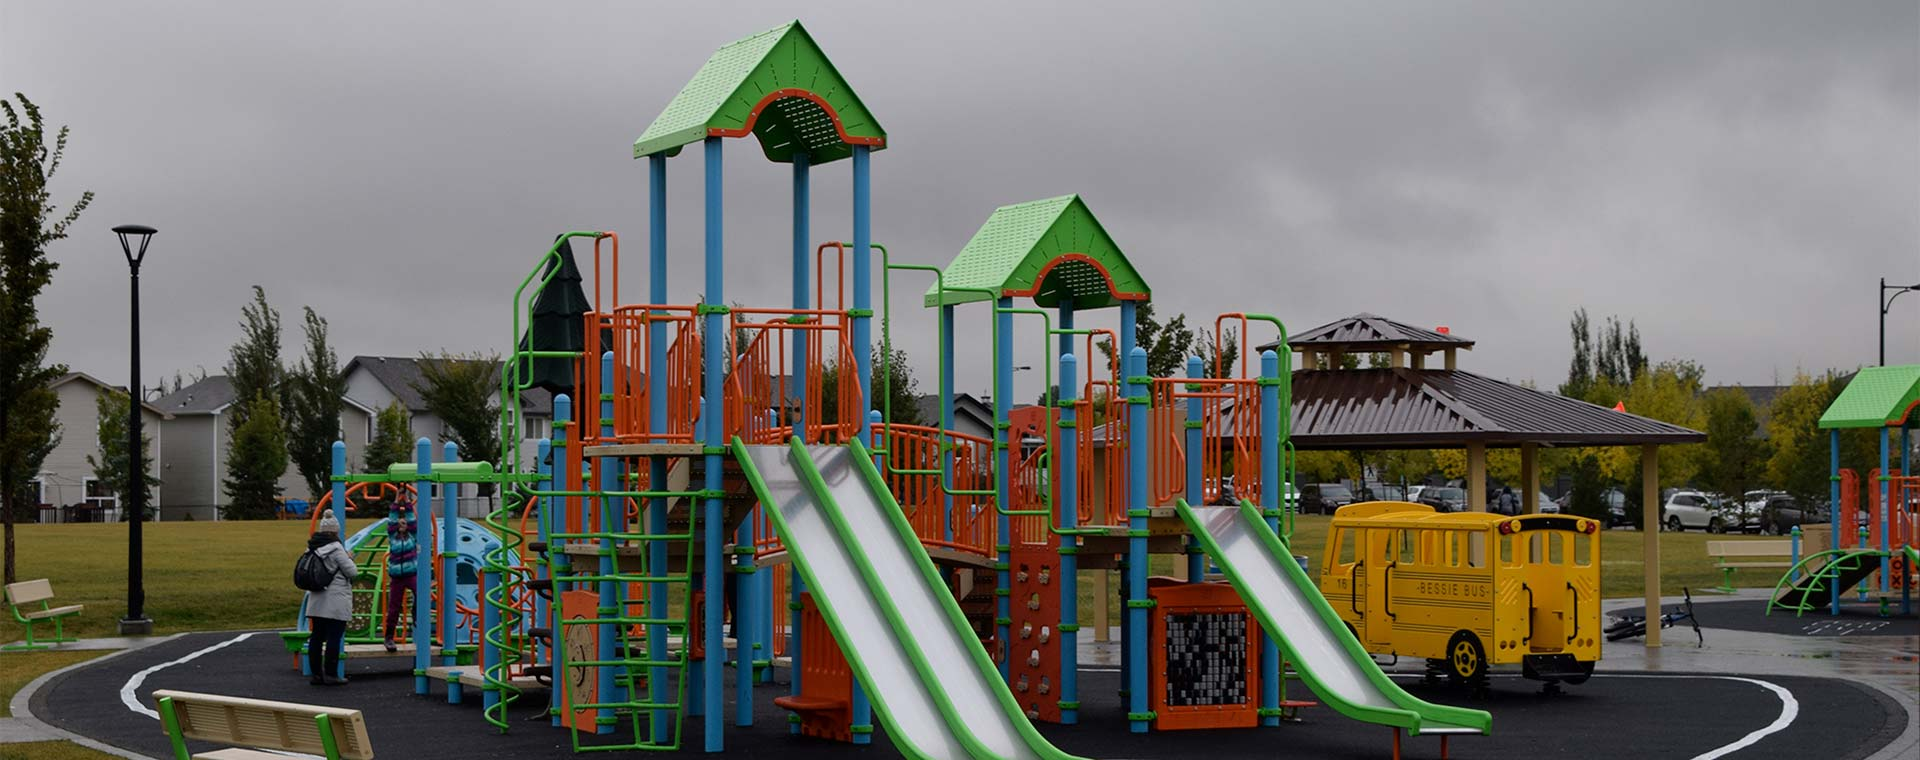 A large playground, with two slides in West Edmonton. The playground is red, blue, green and yellow. There is a gazebo just behind the playground